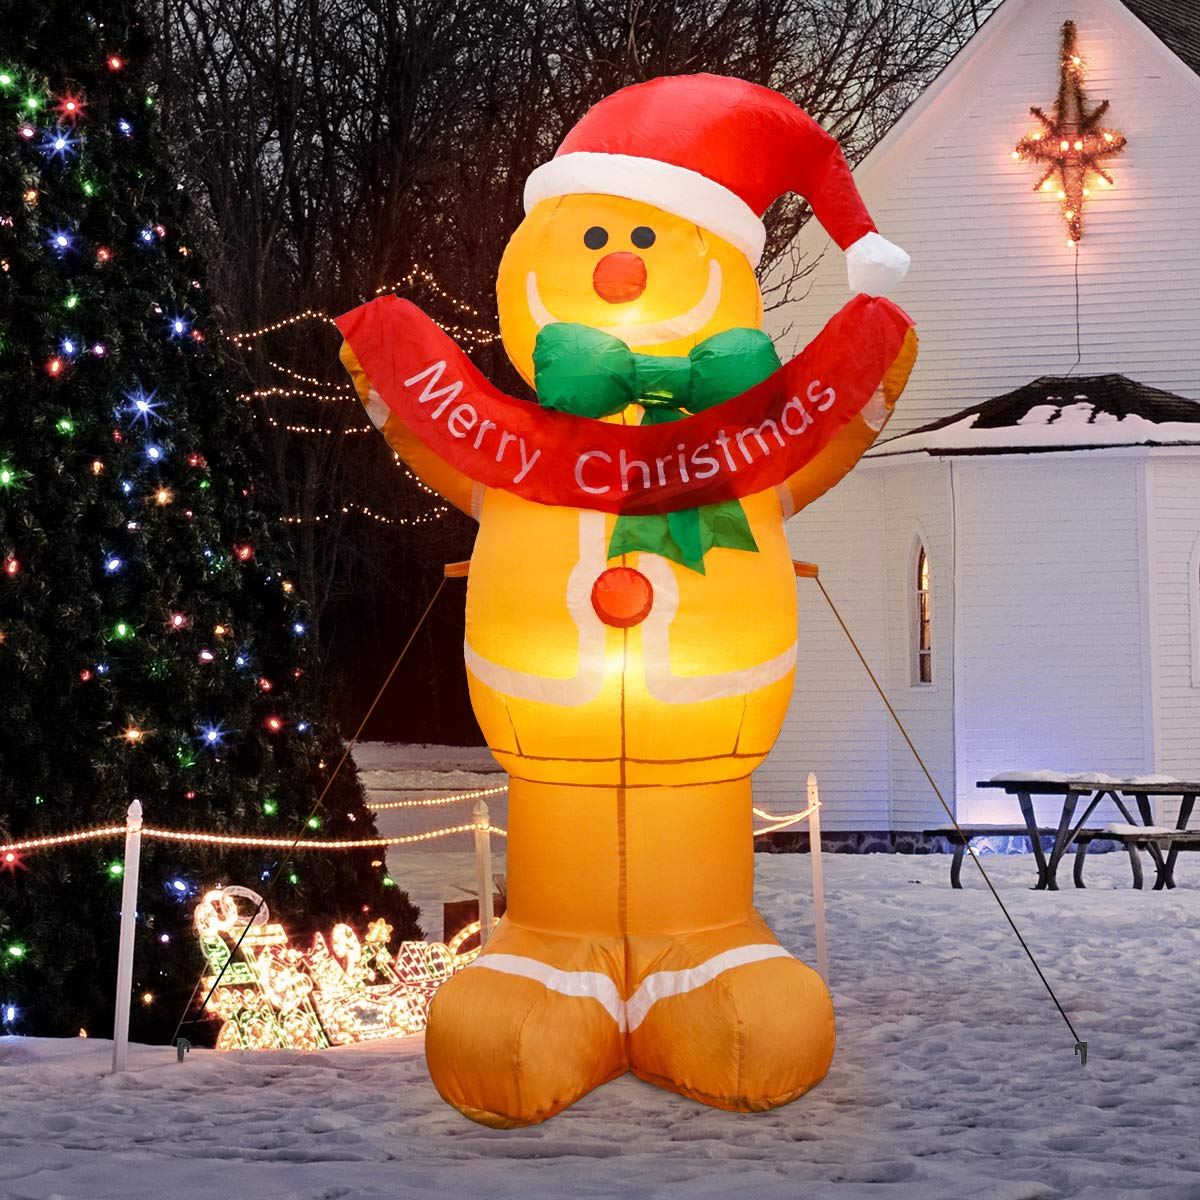 MerryXGift Christmas Inflatable Gingerbread Man 5ft Xmas Airblown Inflatable Blow up Decorations for Yard Outdoor Garden Lawn